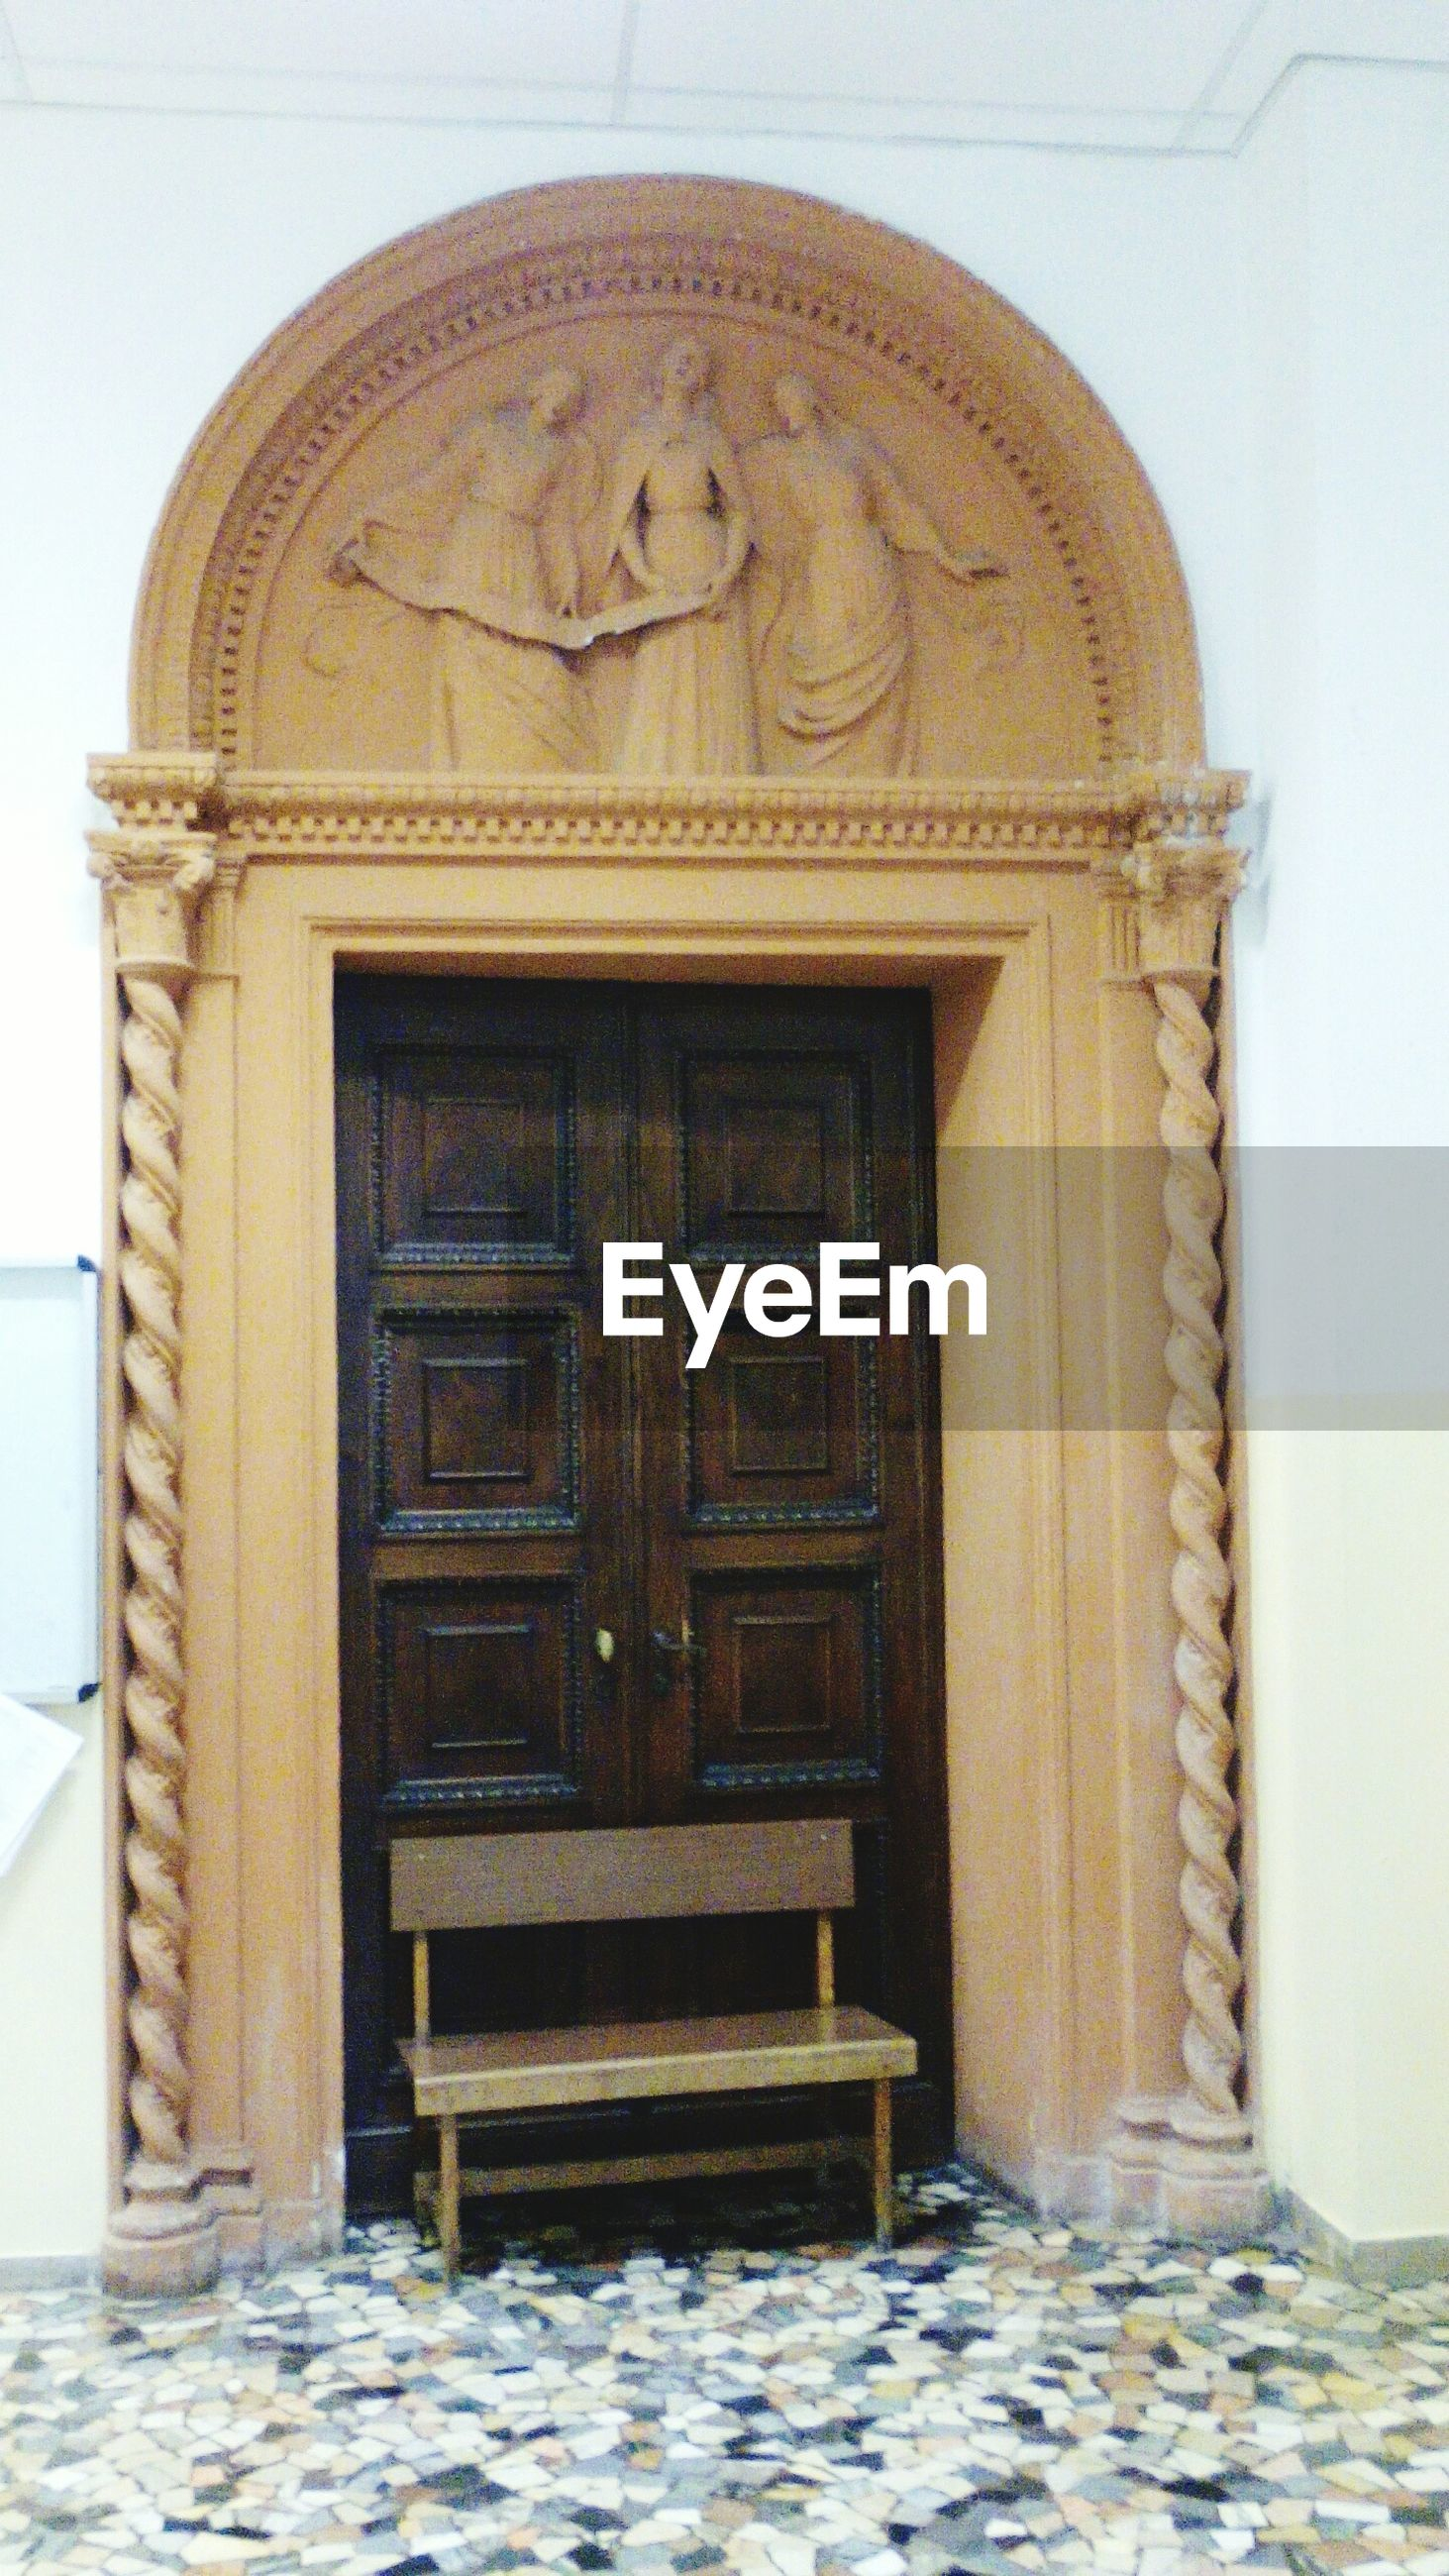 CLOSE-UP VIEW OF DOOR